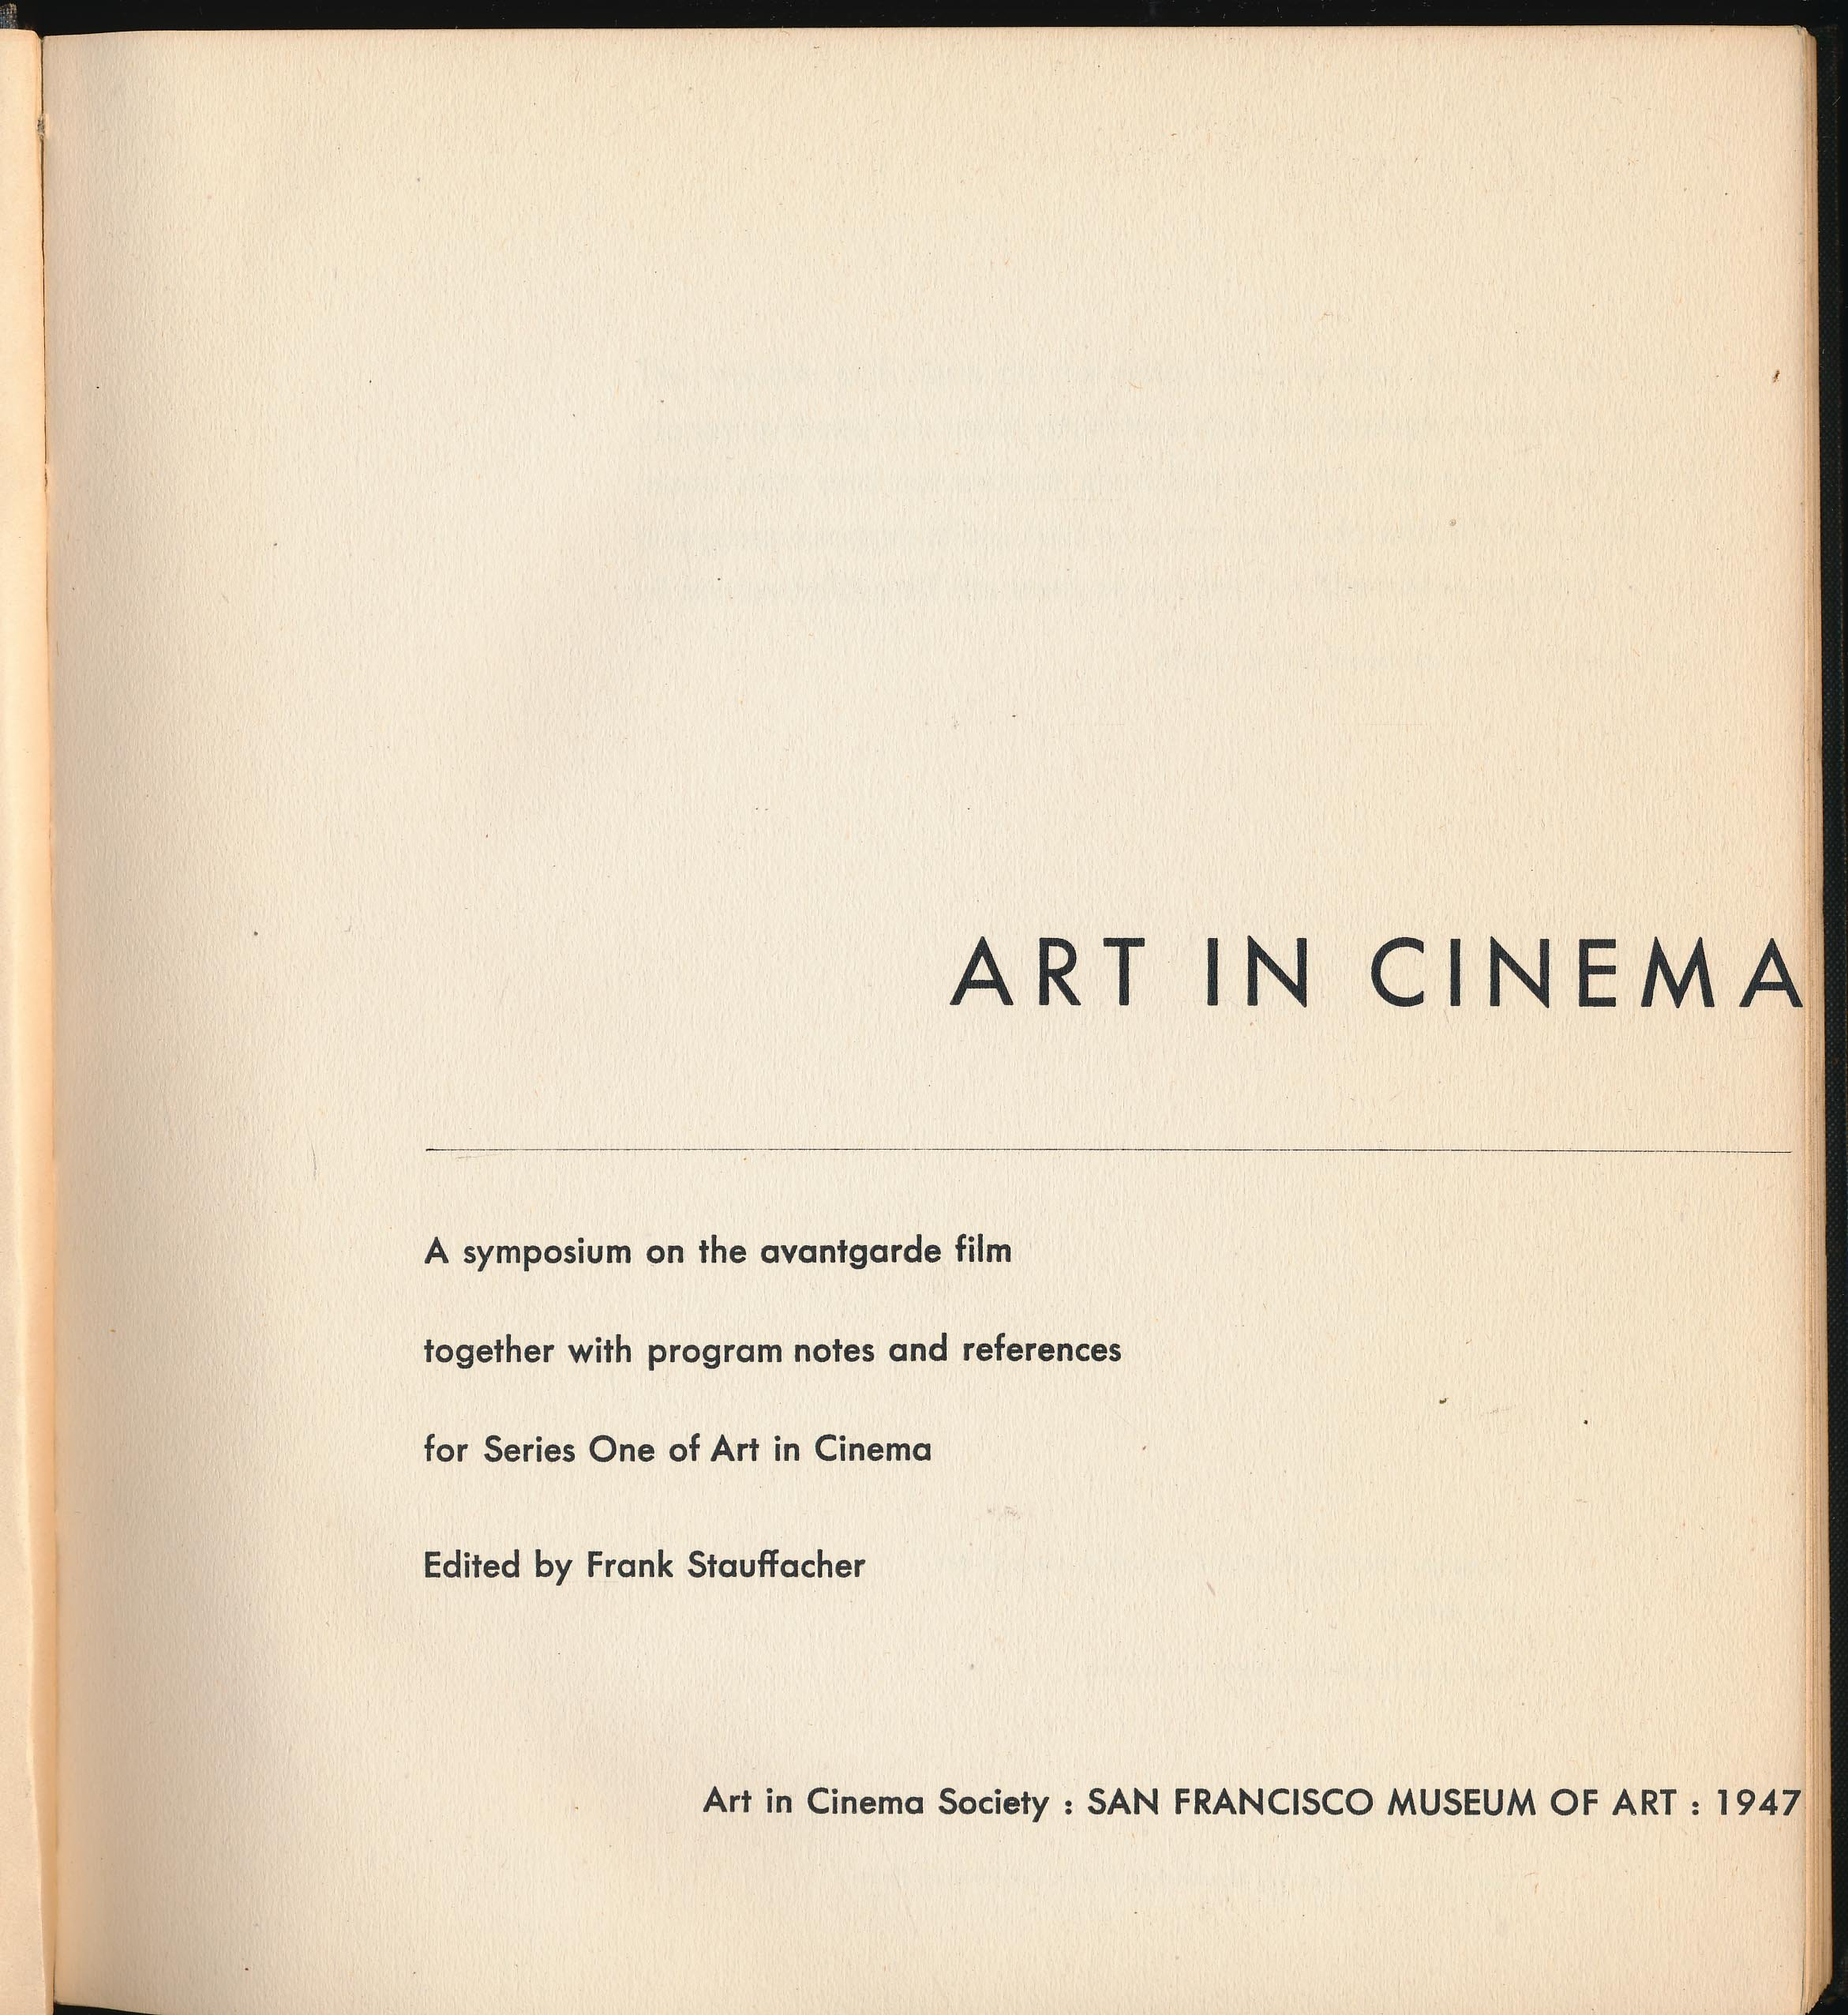 Art In Cinema A Symposium On The Avantgarde Film Together With Program Notes And References For Series One Of Hardcover 1947